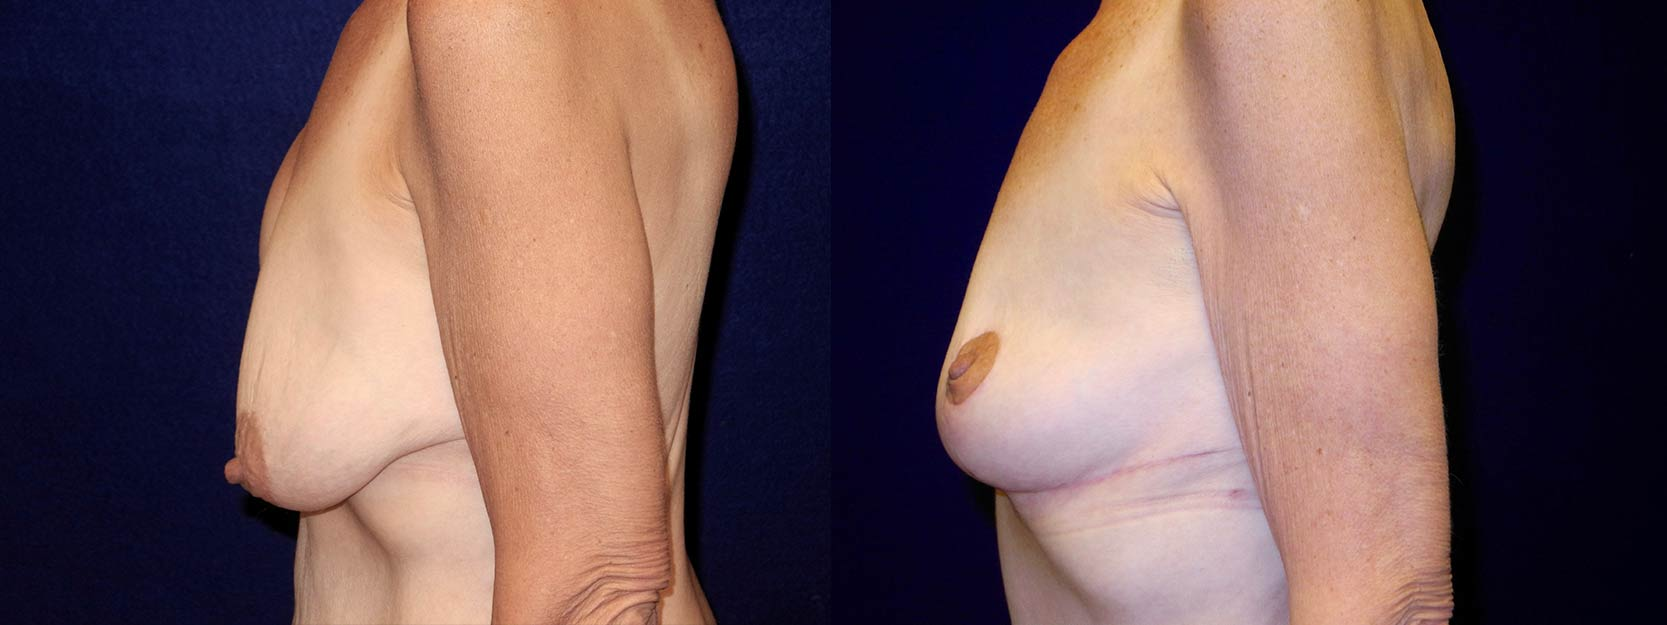 Left Profile View - Breast Lift After Weight Loss